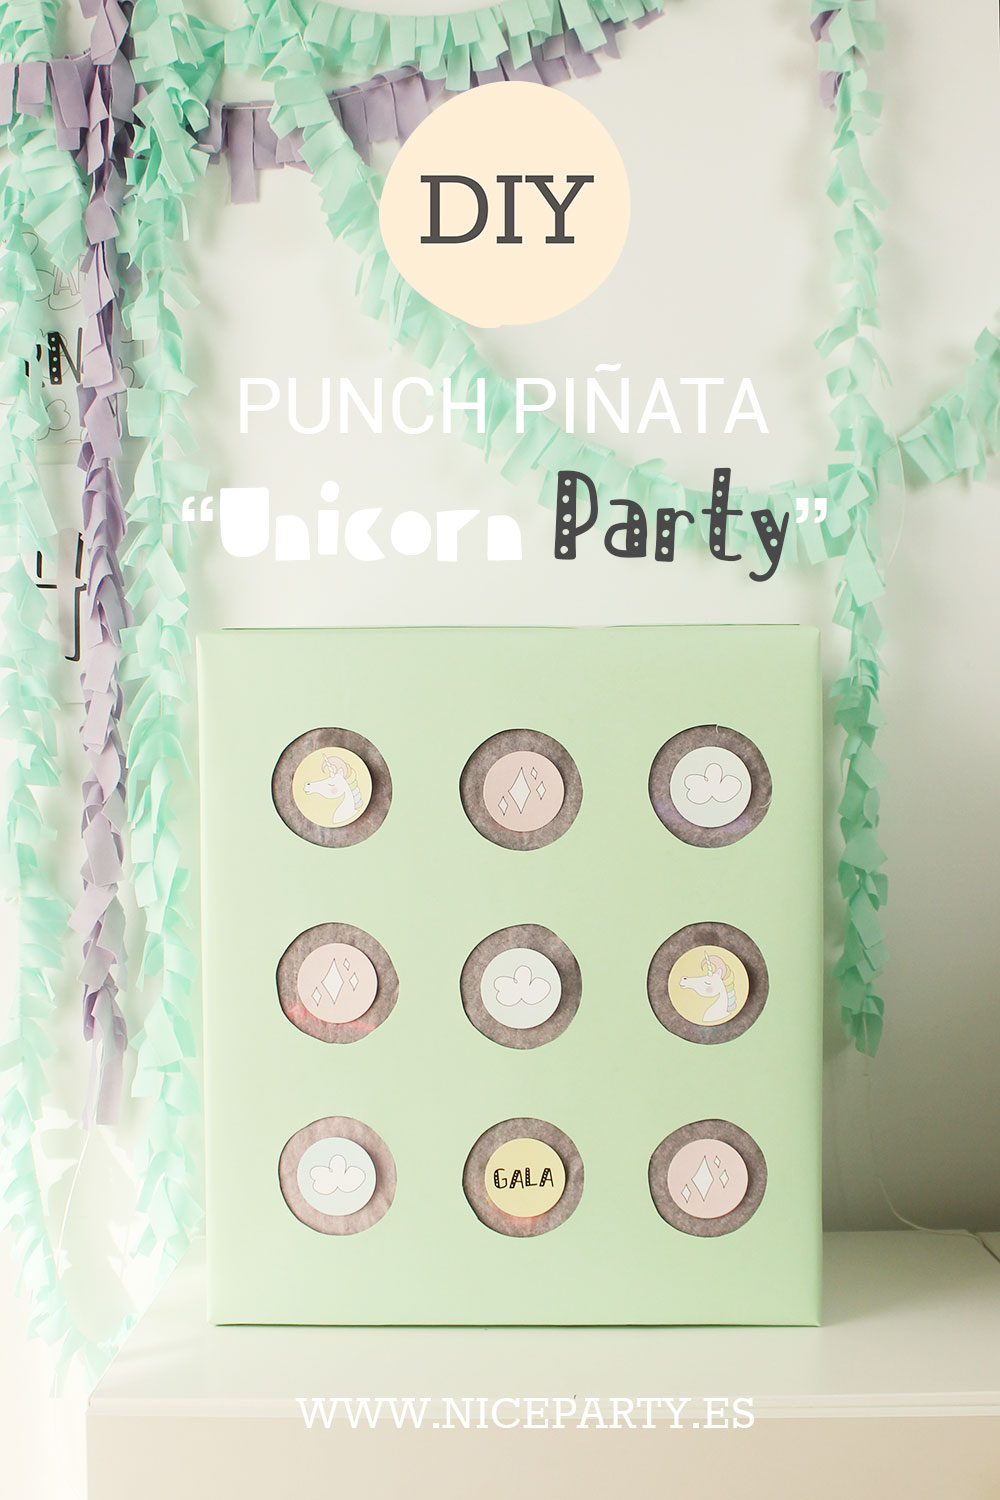 diy-punch-pinata-unicorn-party-2